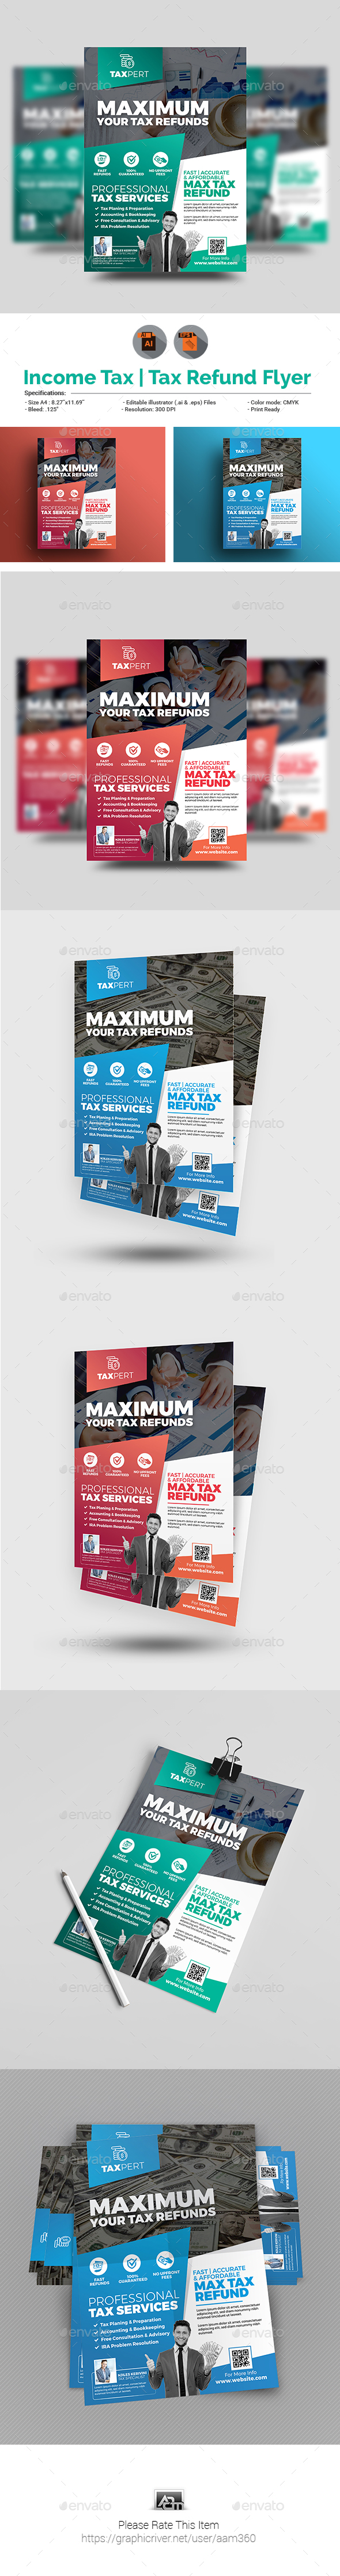 Income Tax/Tax Refund Flyer Template - Corporate Flyers